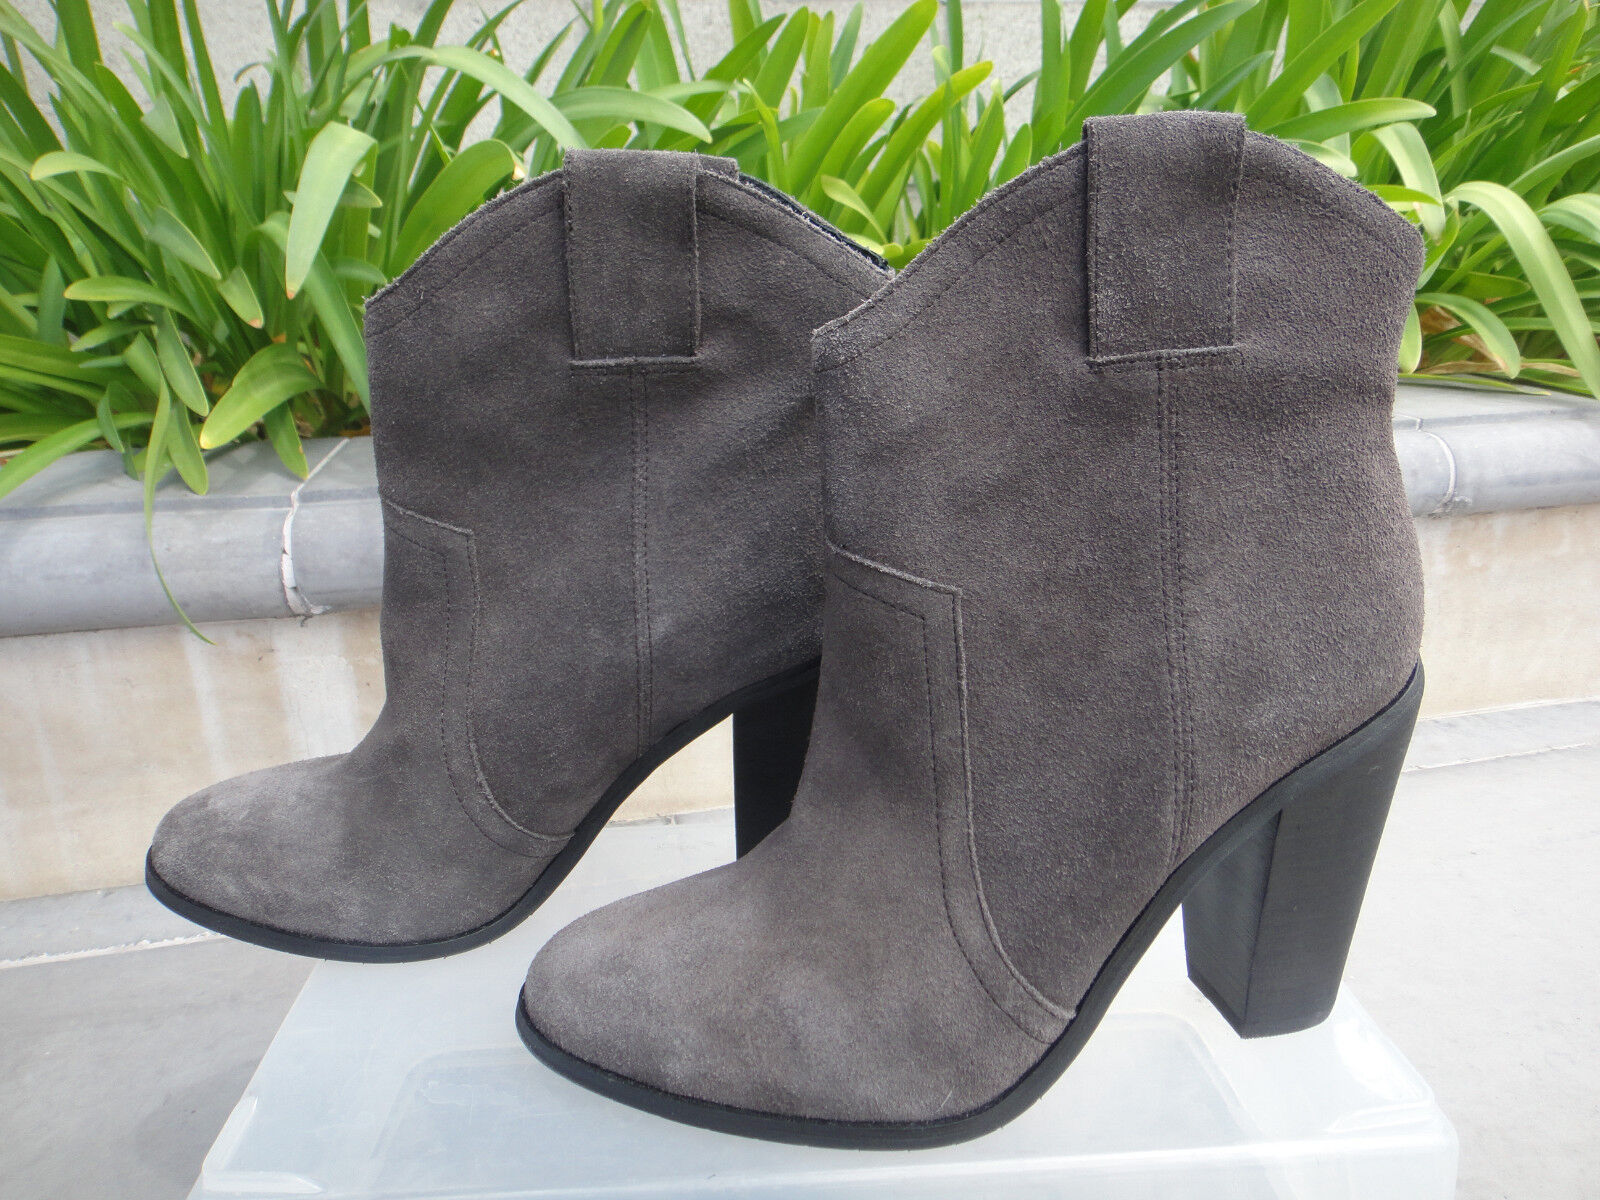 Kenneth Cole NEU York SPARTA Asphalt Suede Boot Bootie Wmns Sz US7.5, MSRP159